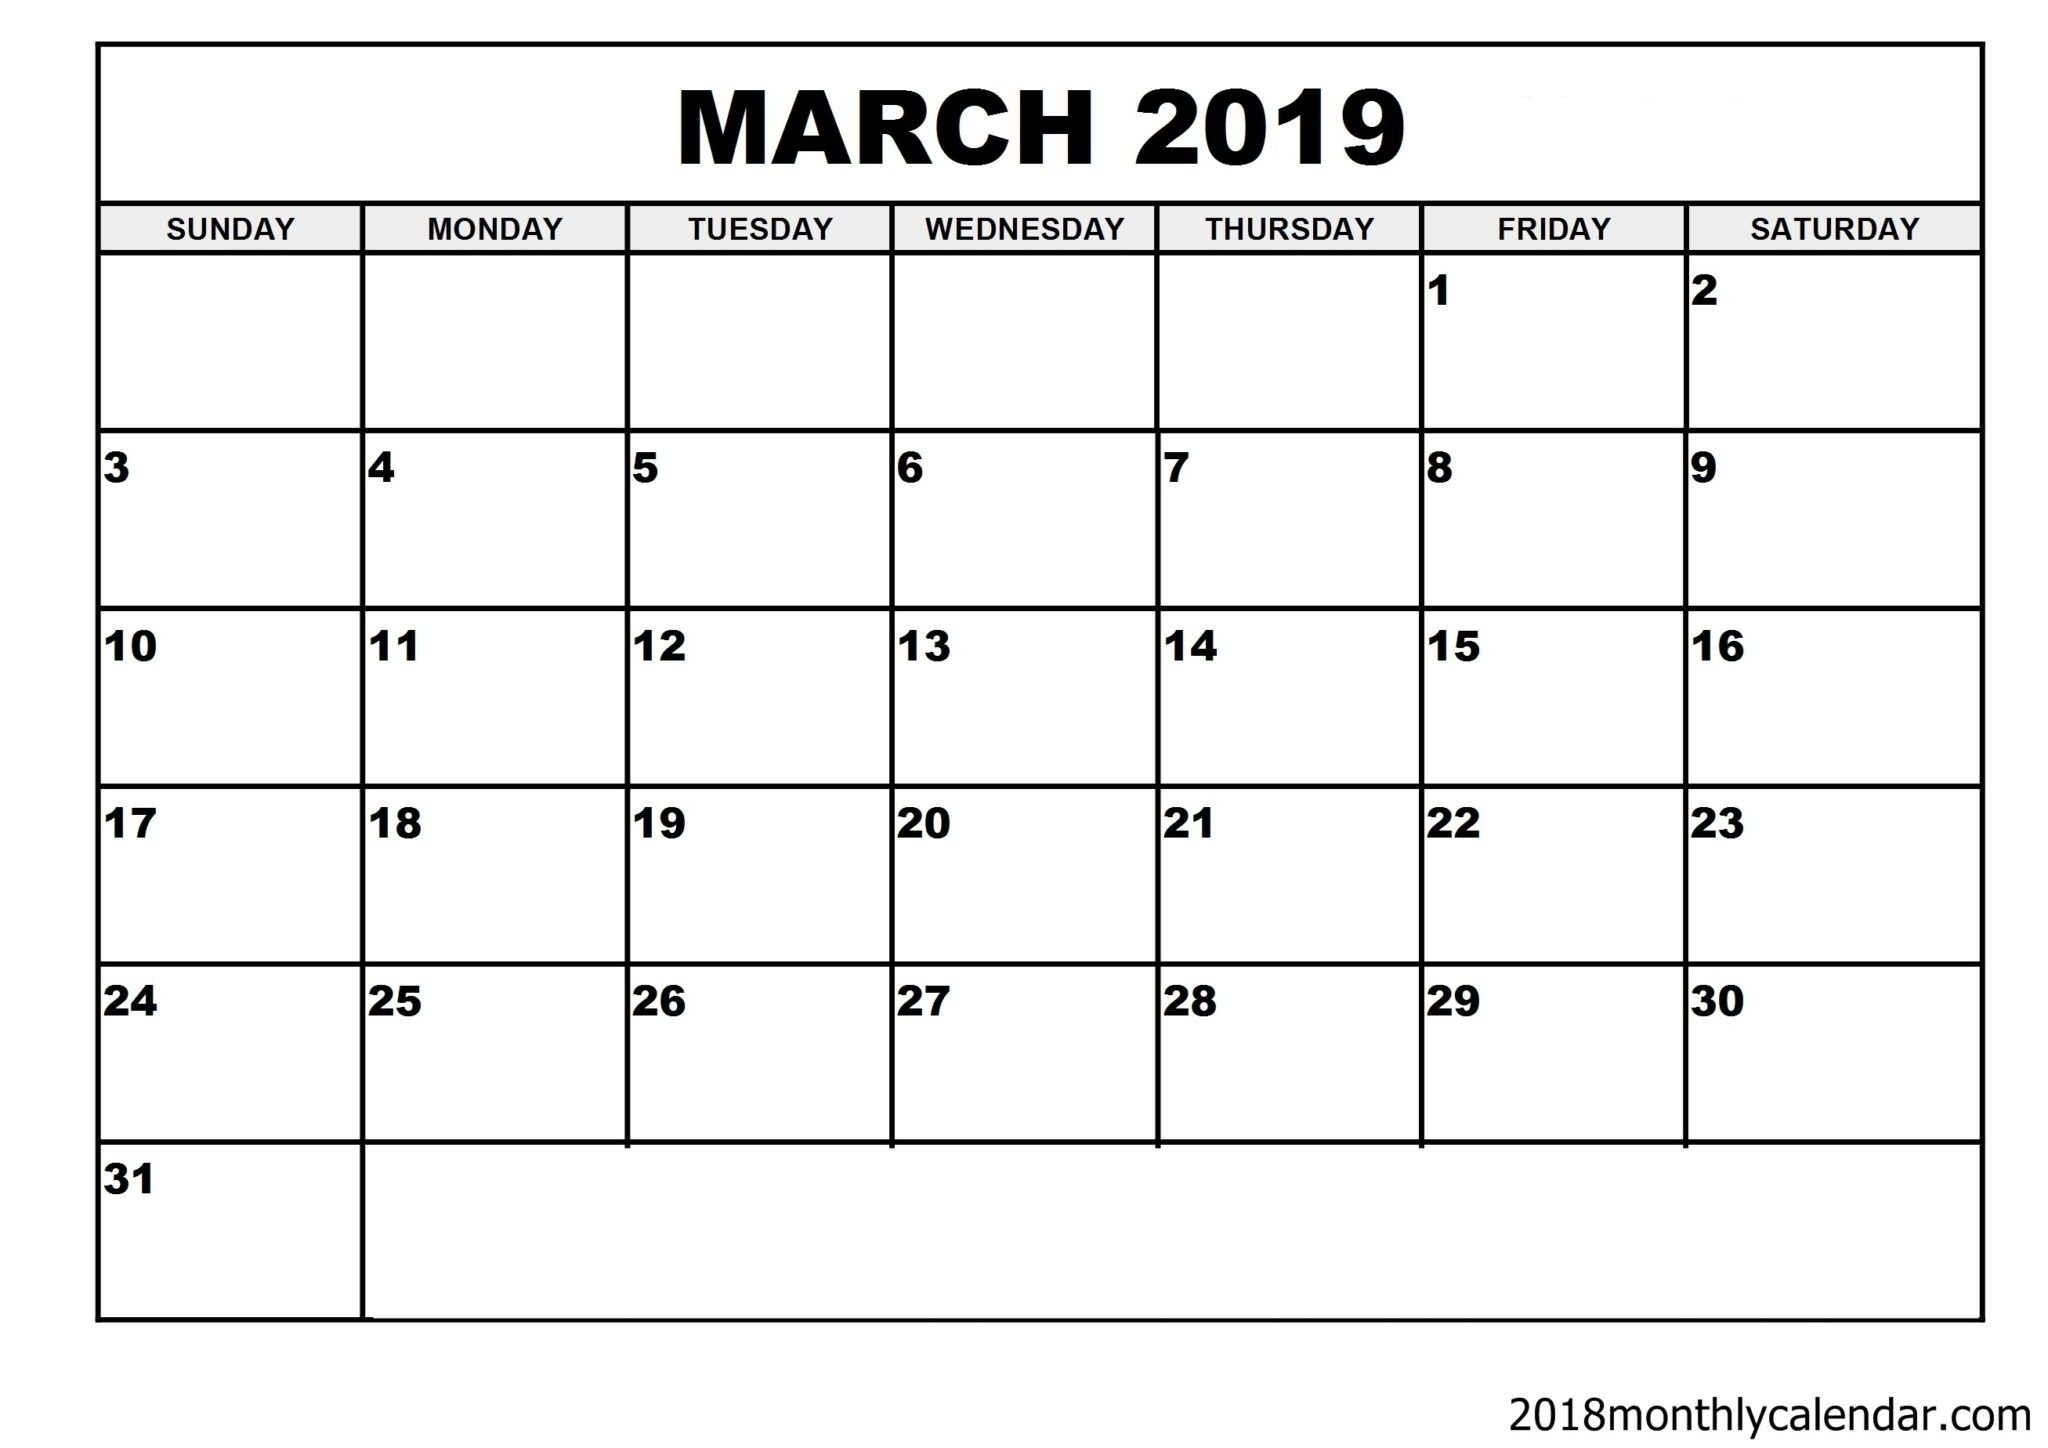 Download March 2019 Calendar – Blank Template - Editable